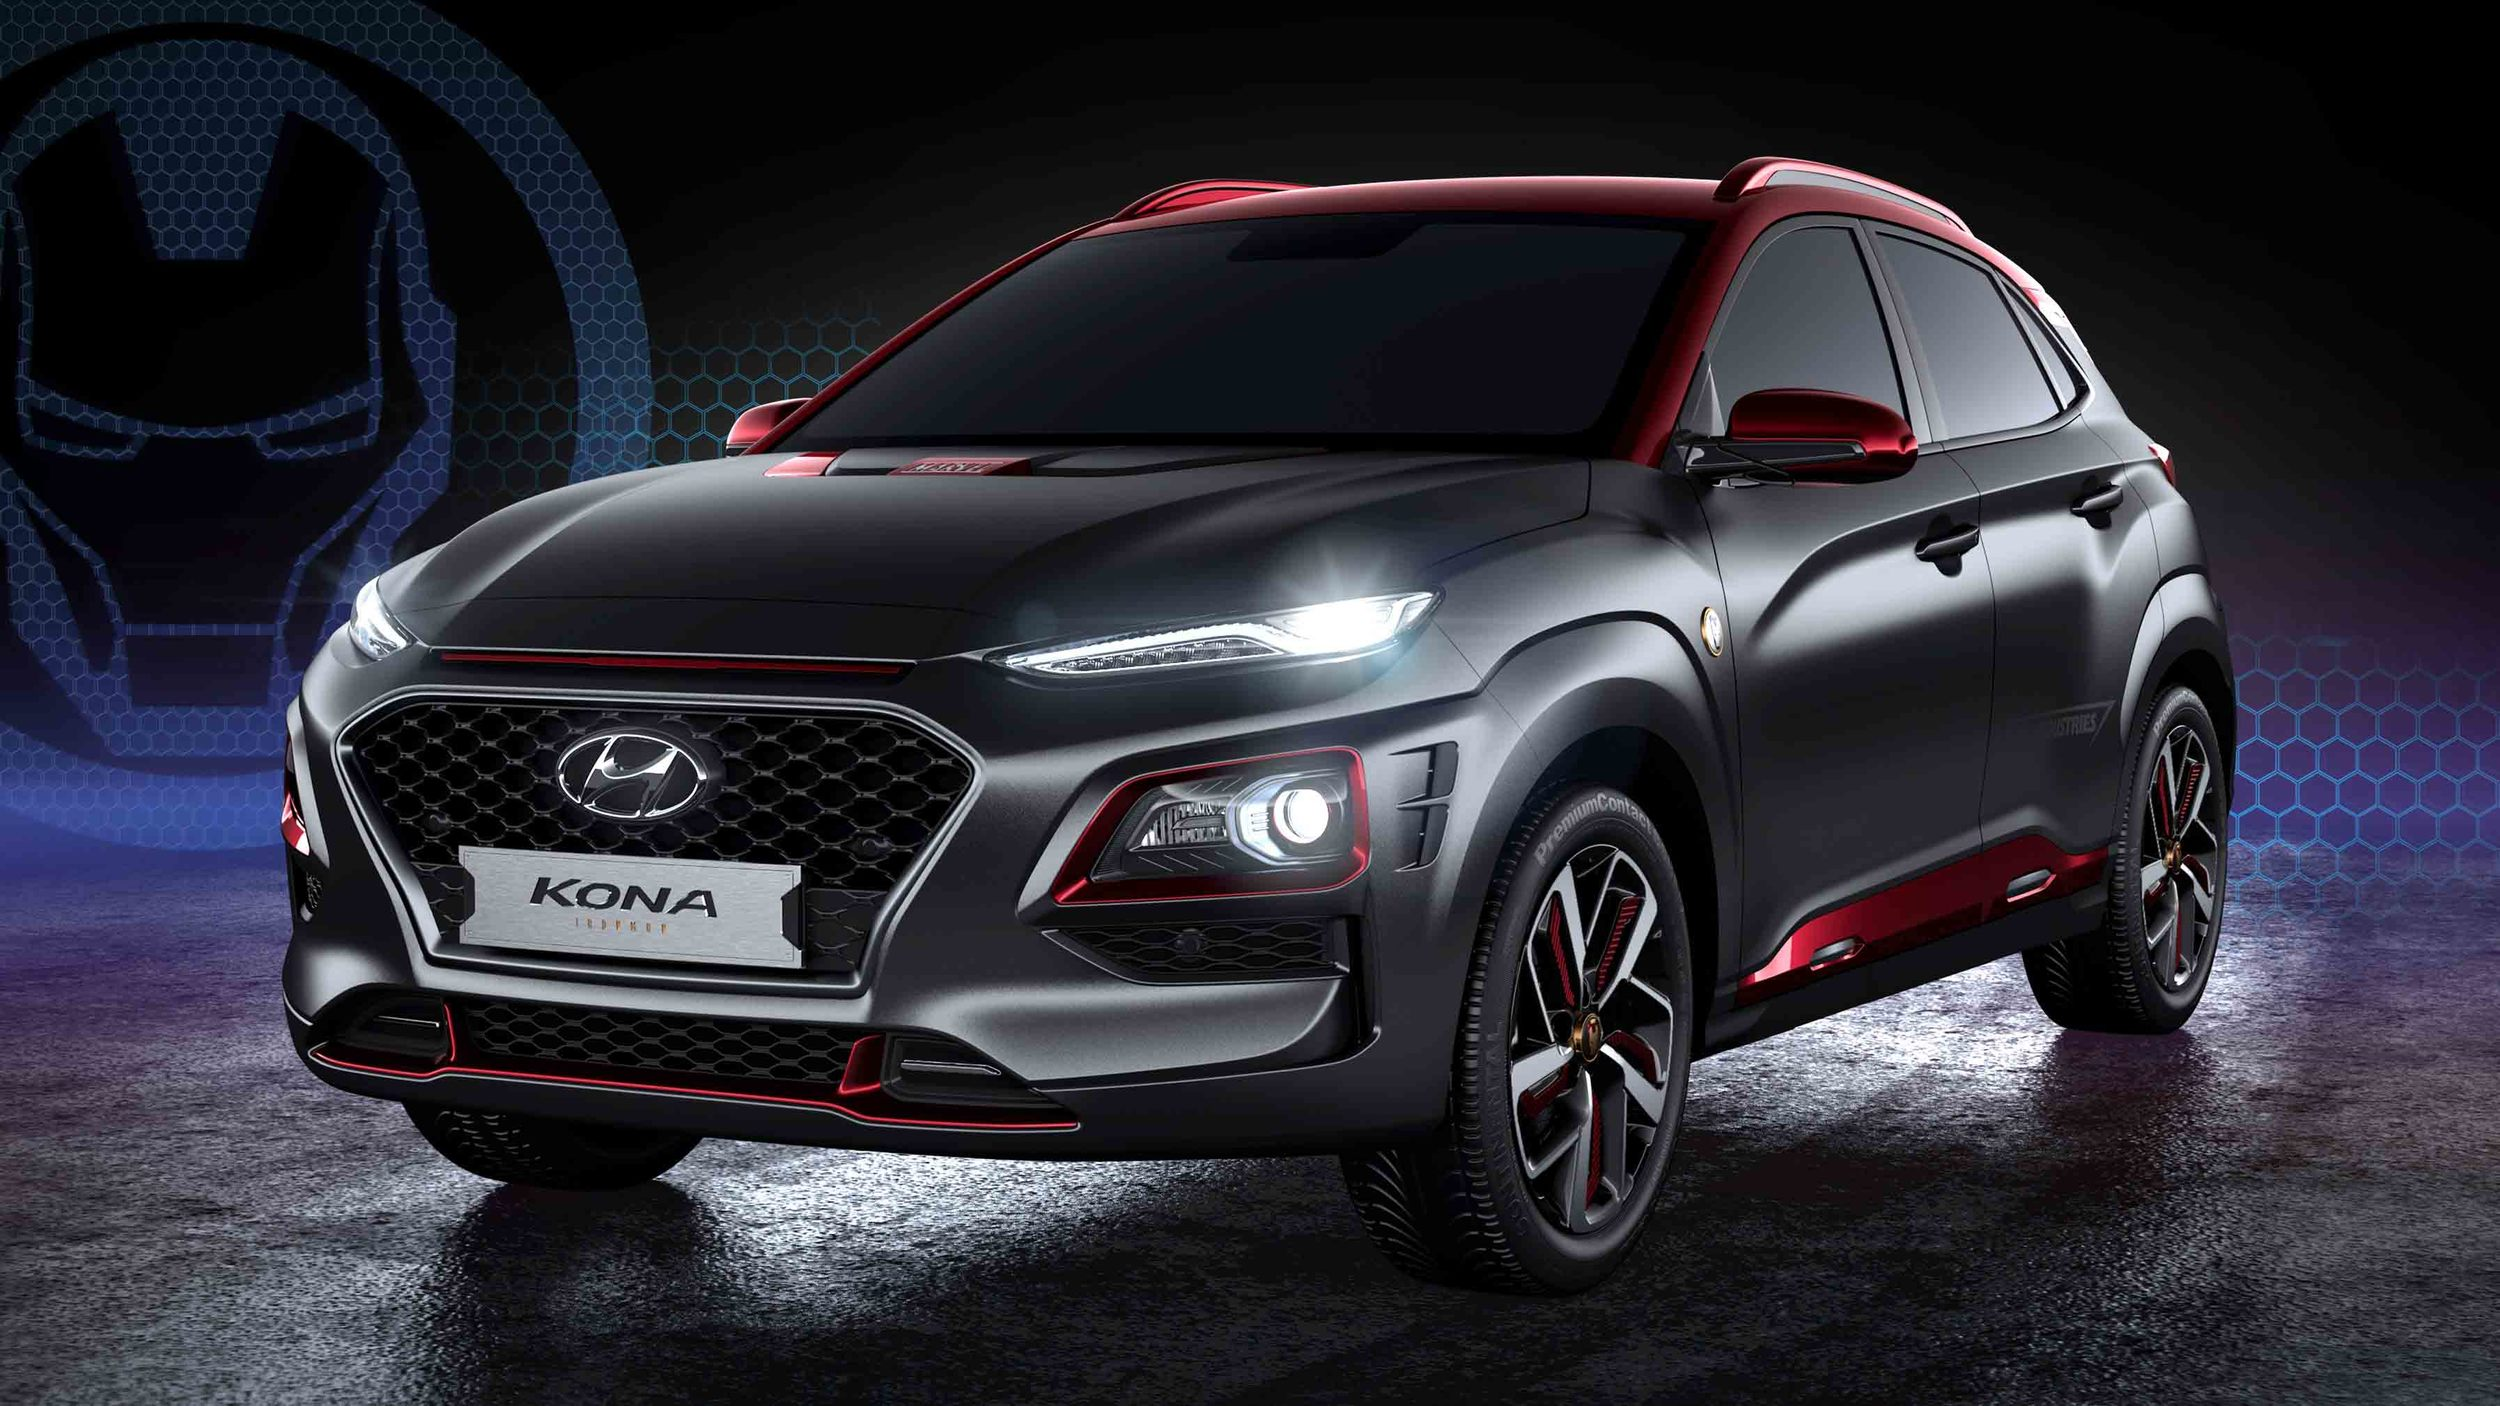 Hyundai Kona Iron Man Edition (1)